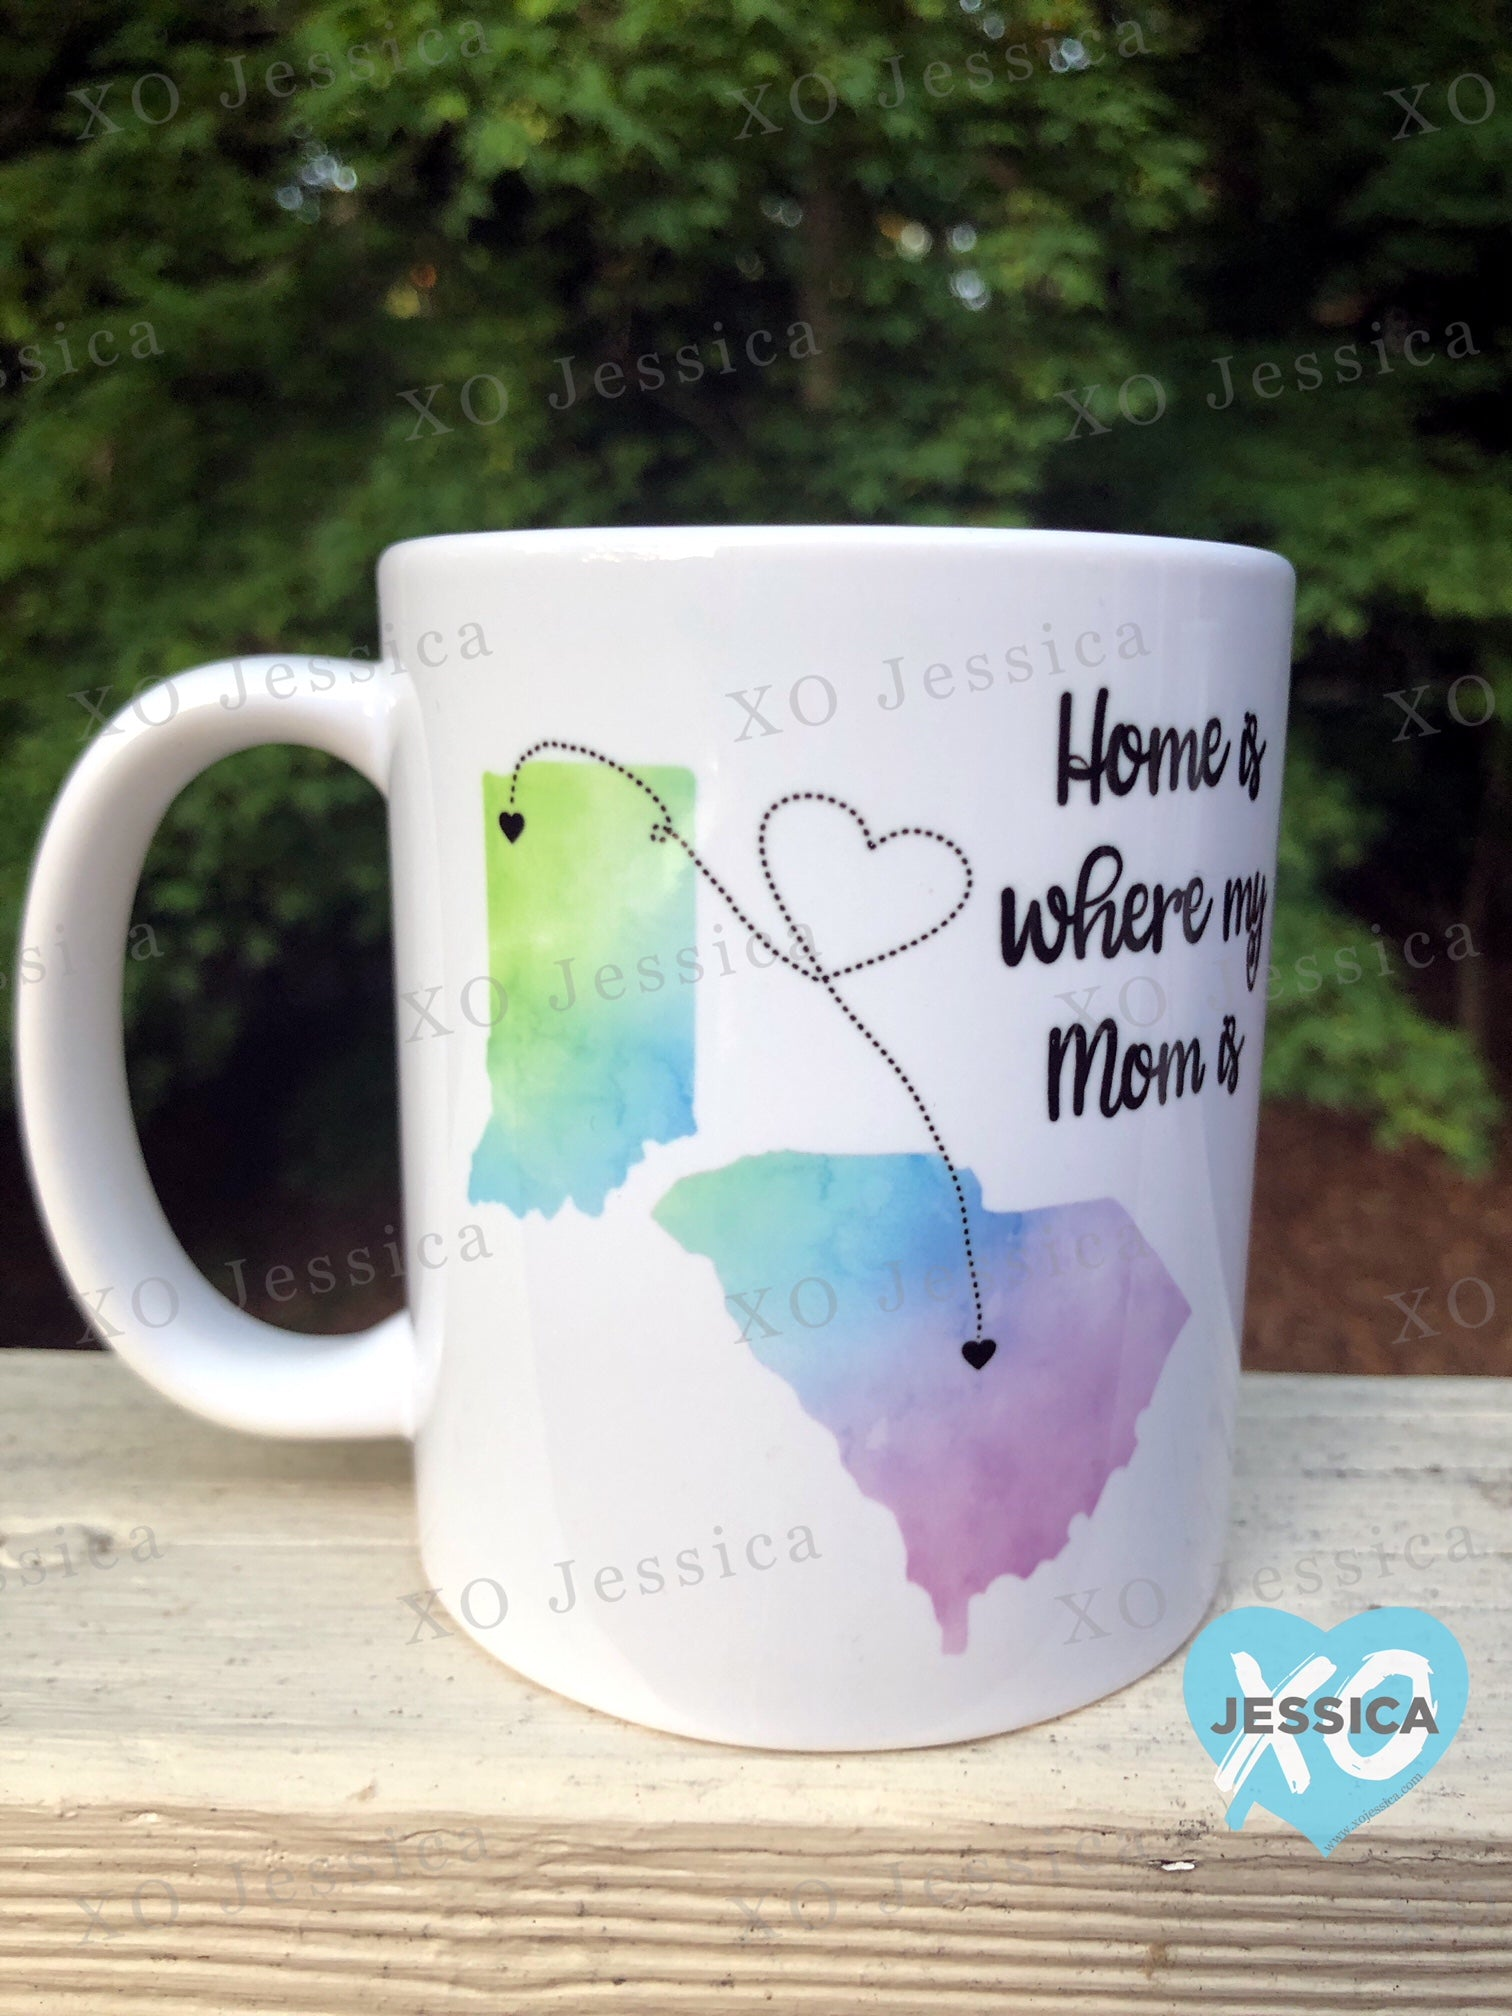 Home Is Where My Mom Iswatercolor Mug Xo Jessica